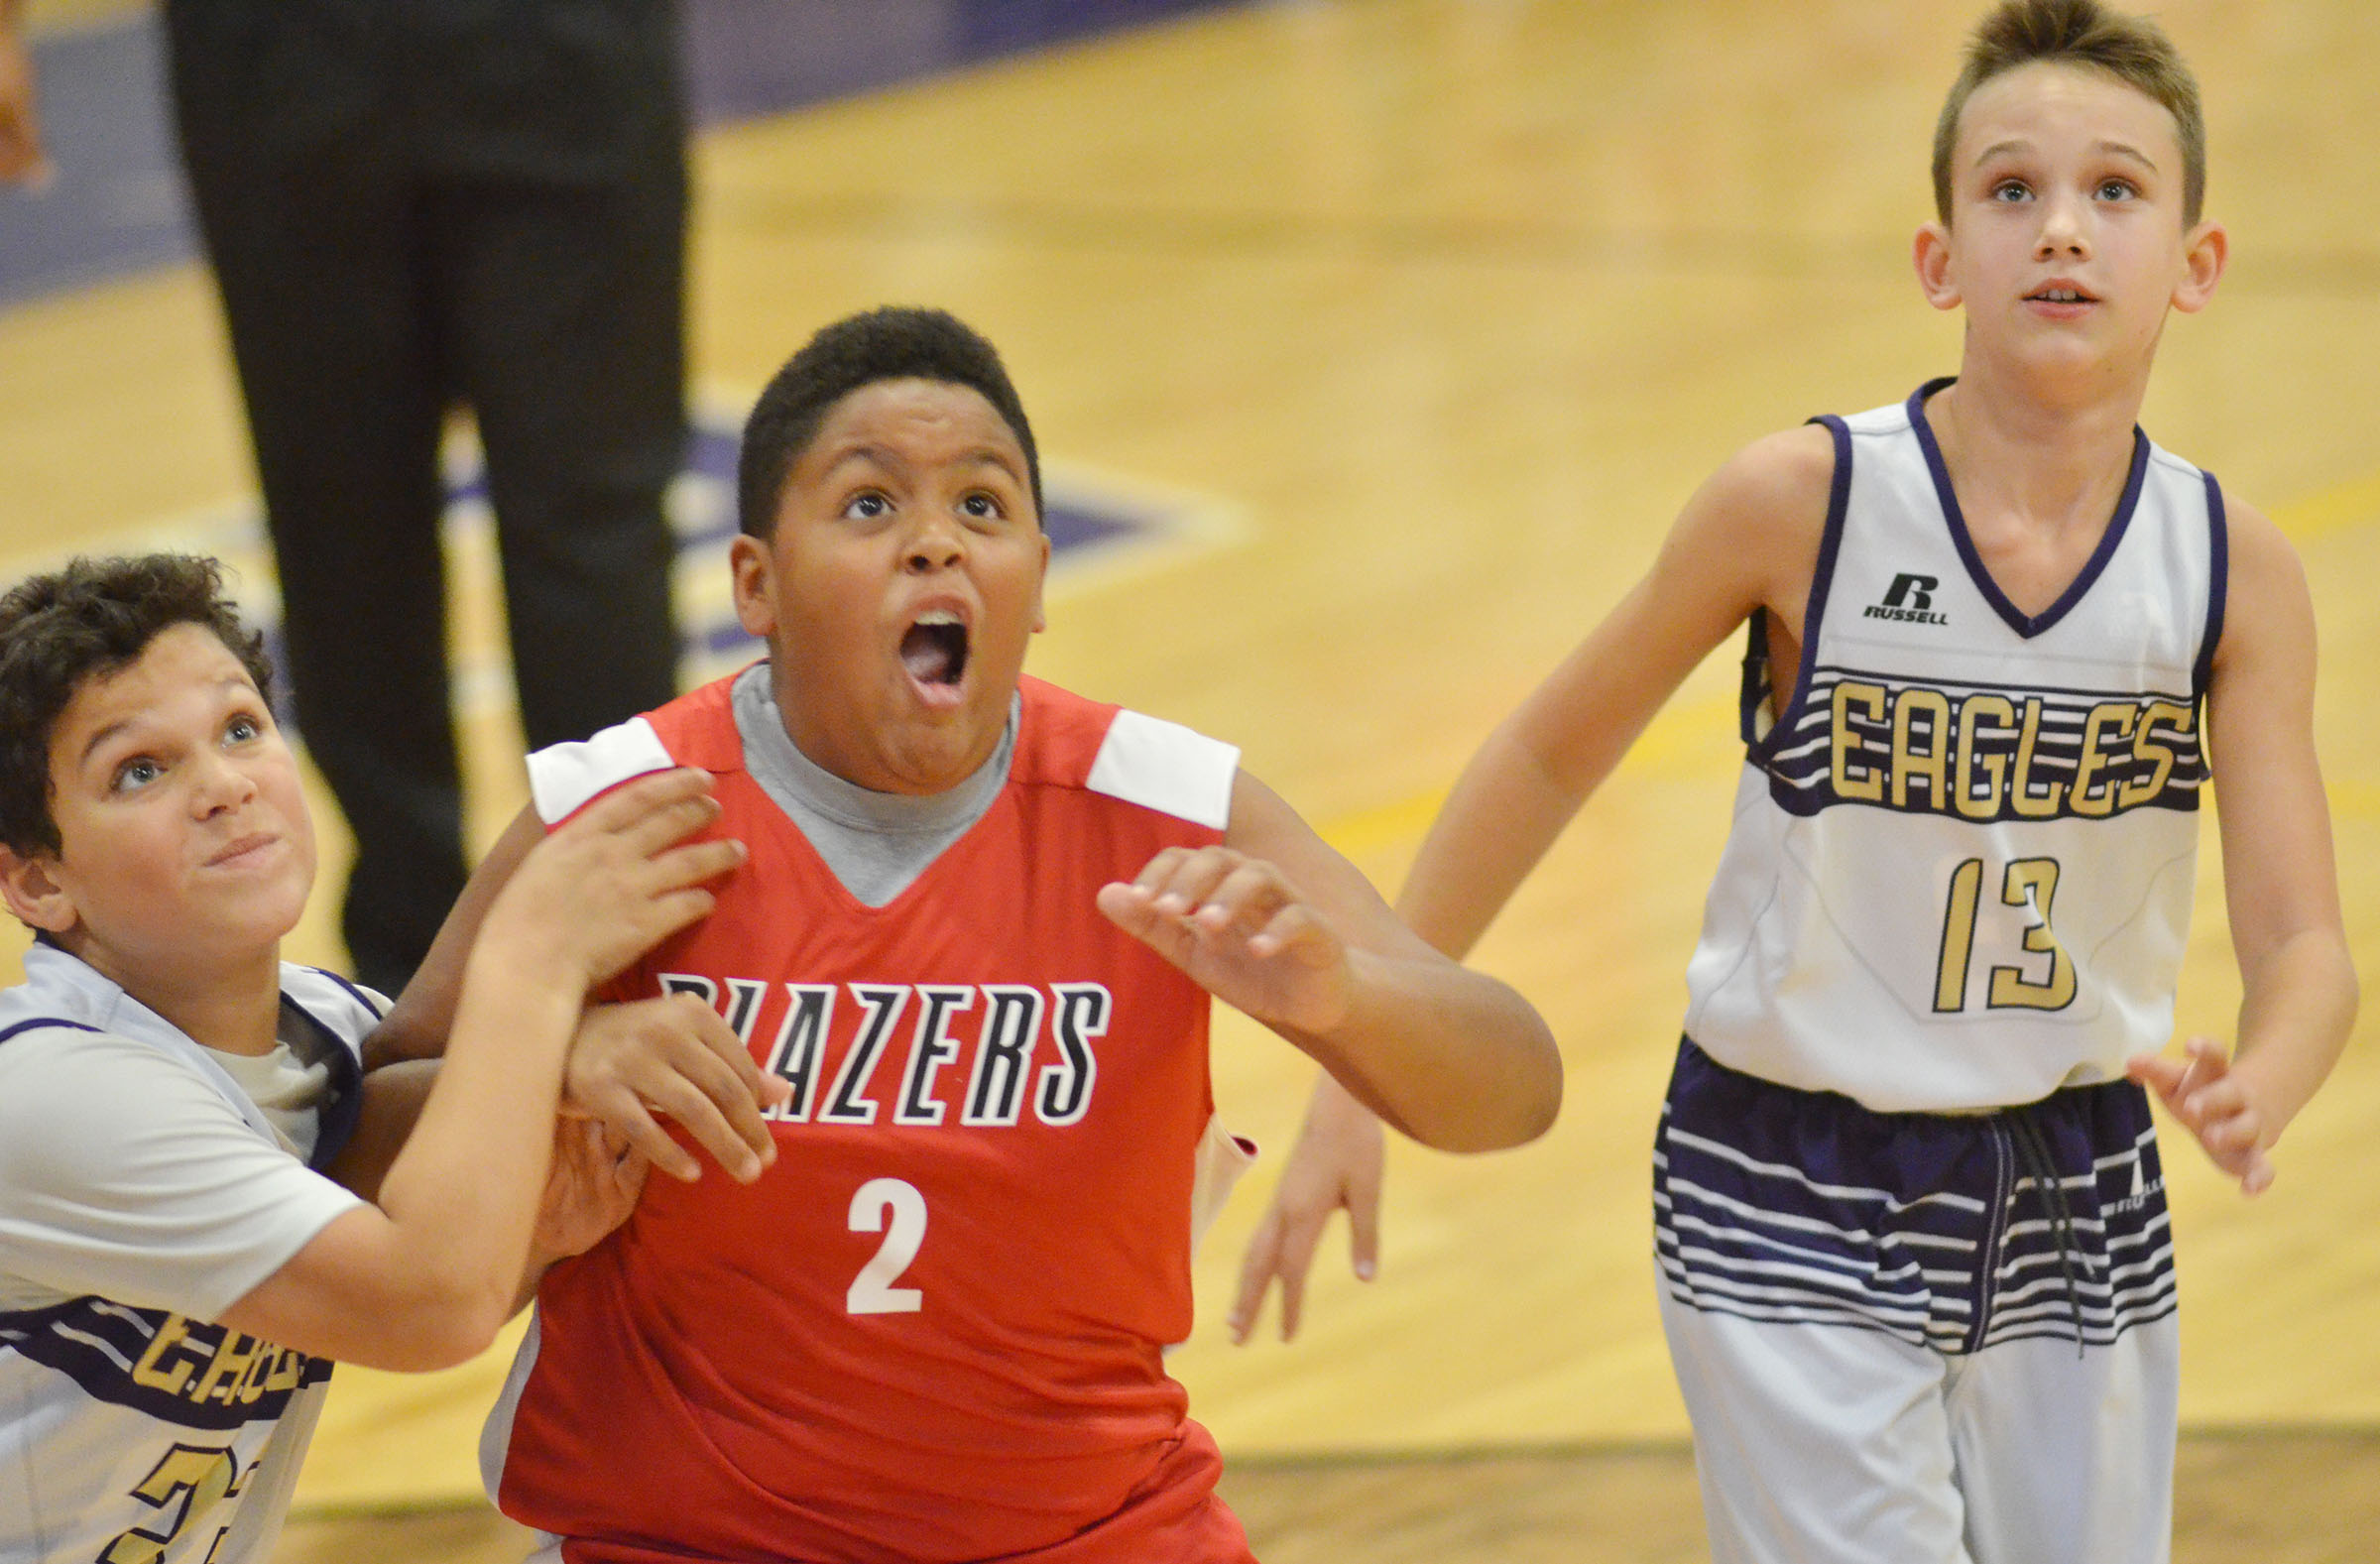 CMS sixth-graders Kaydon Taylor, at left, and Camren Vicari fight for a rebound.